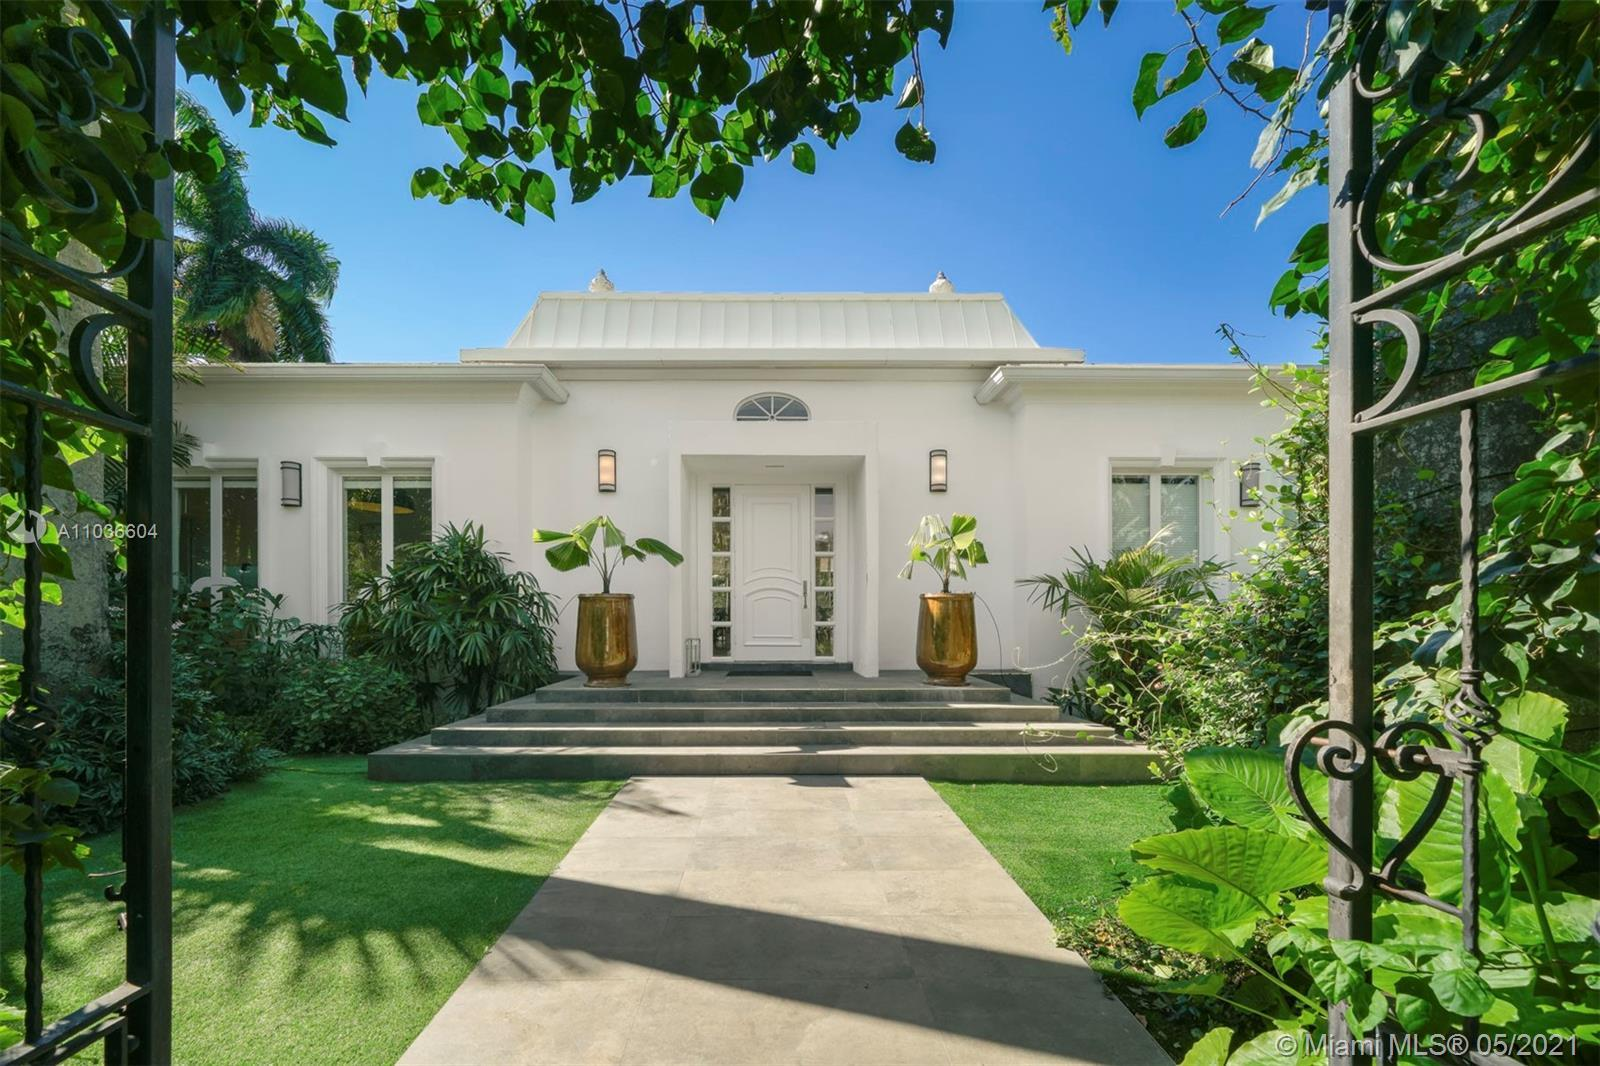 Elegant and dramatic pool home on Fabulous La Gorce Island.  Total of 6 bedrooms, 5 in the main hous